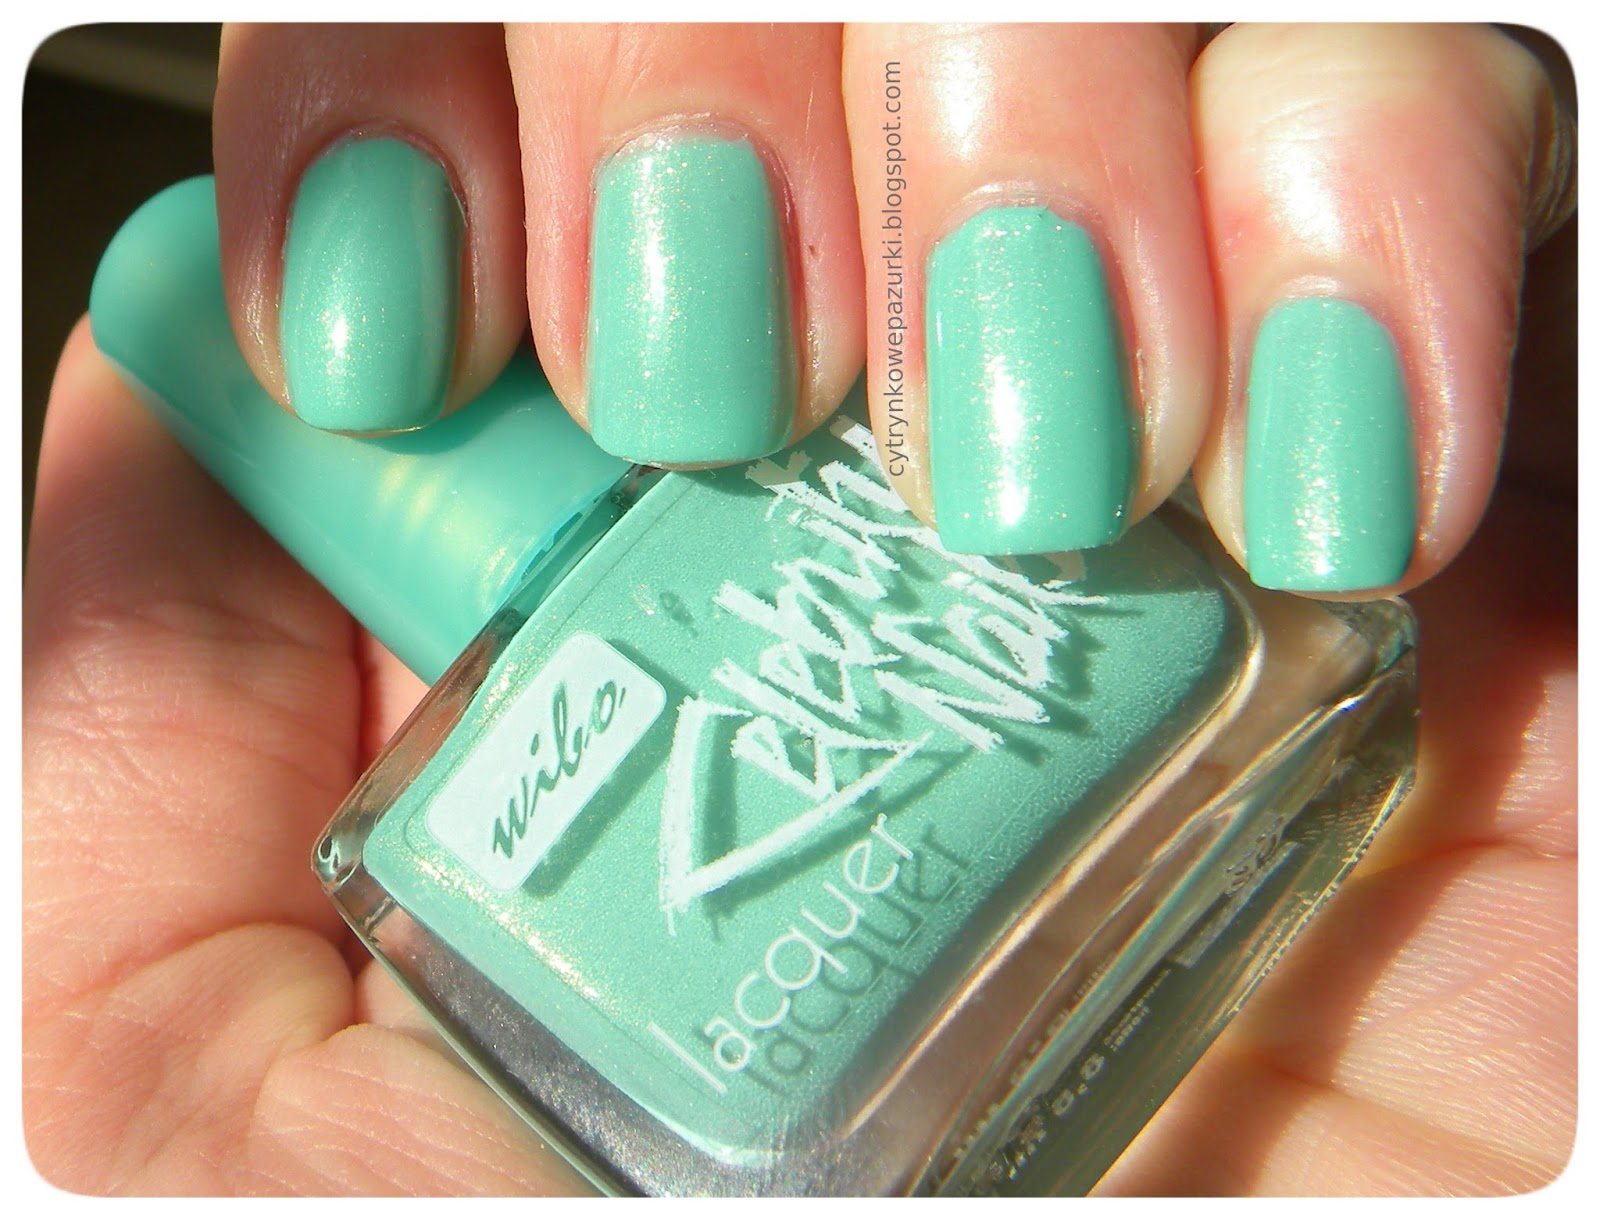 Wibo Celebrity Nails nr 8 Mint Project